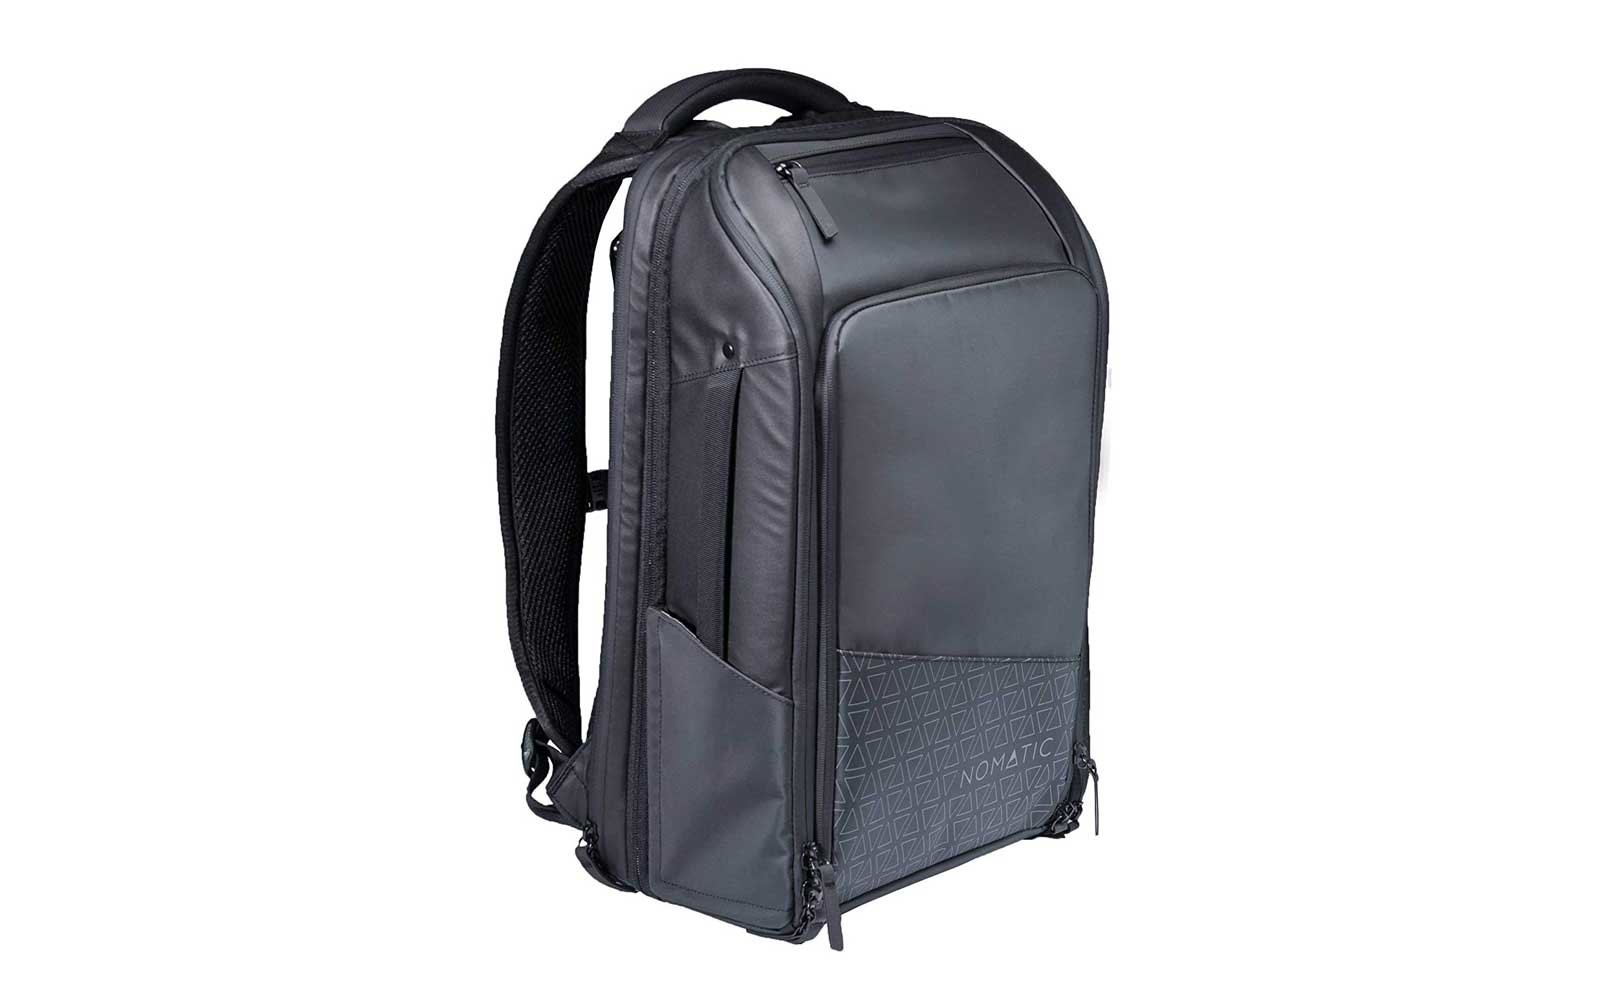 80d03c1b62 Best All-in-one Laptop Backpack  Nomatic Travel Pack